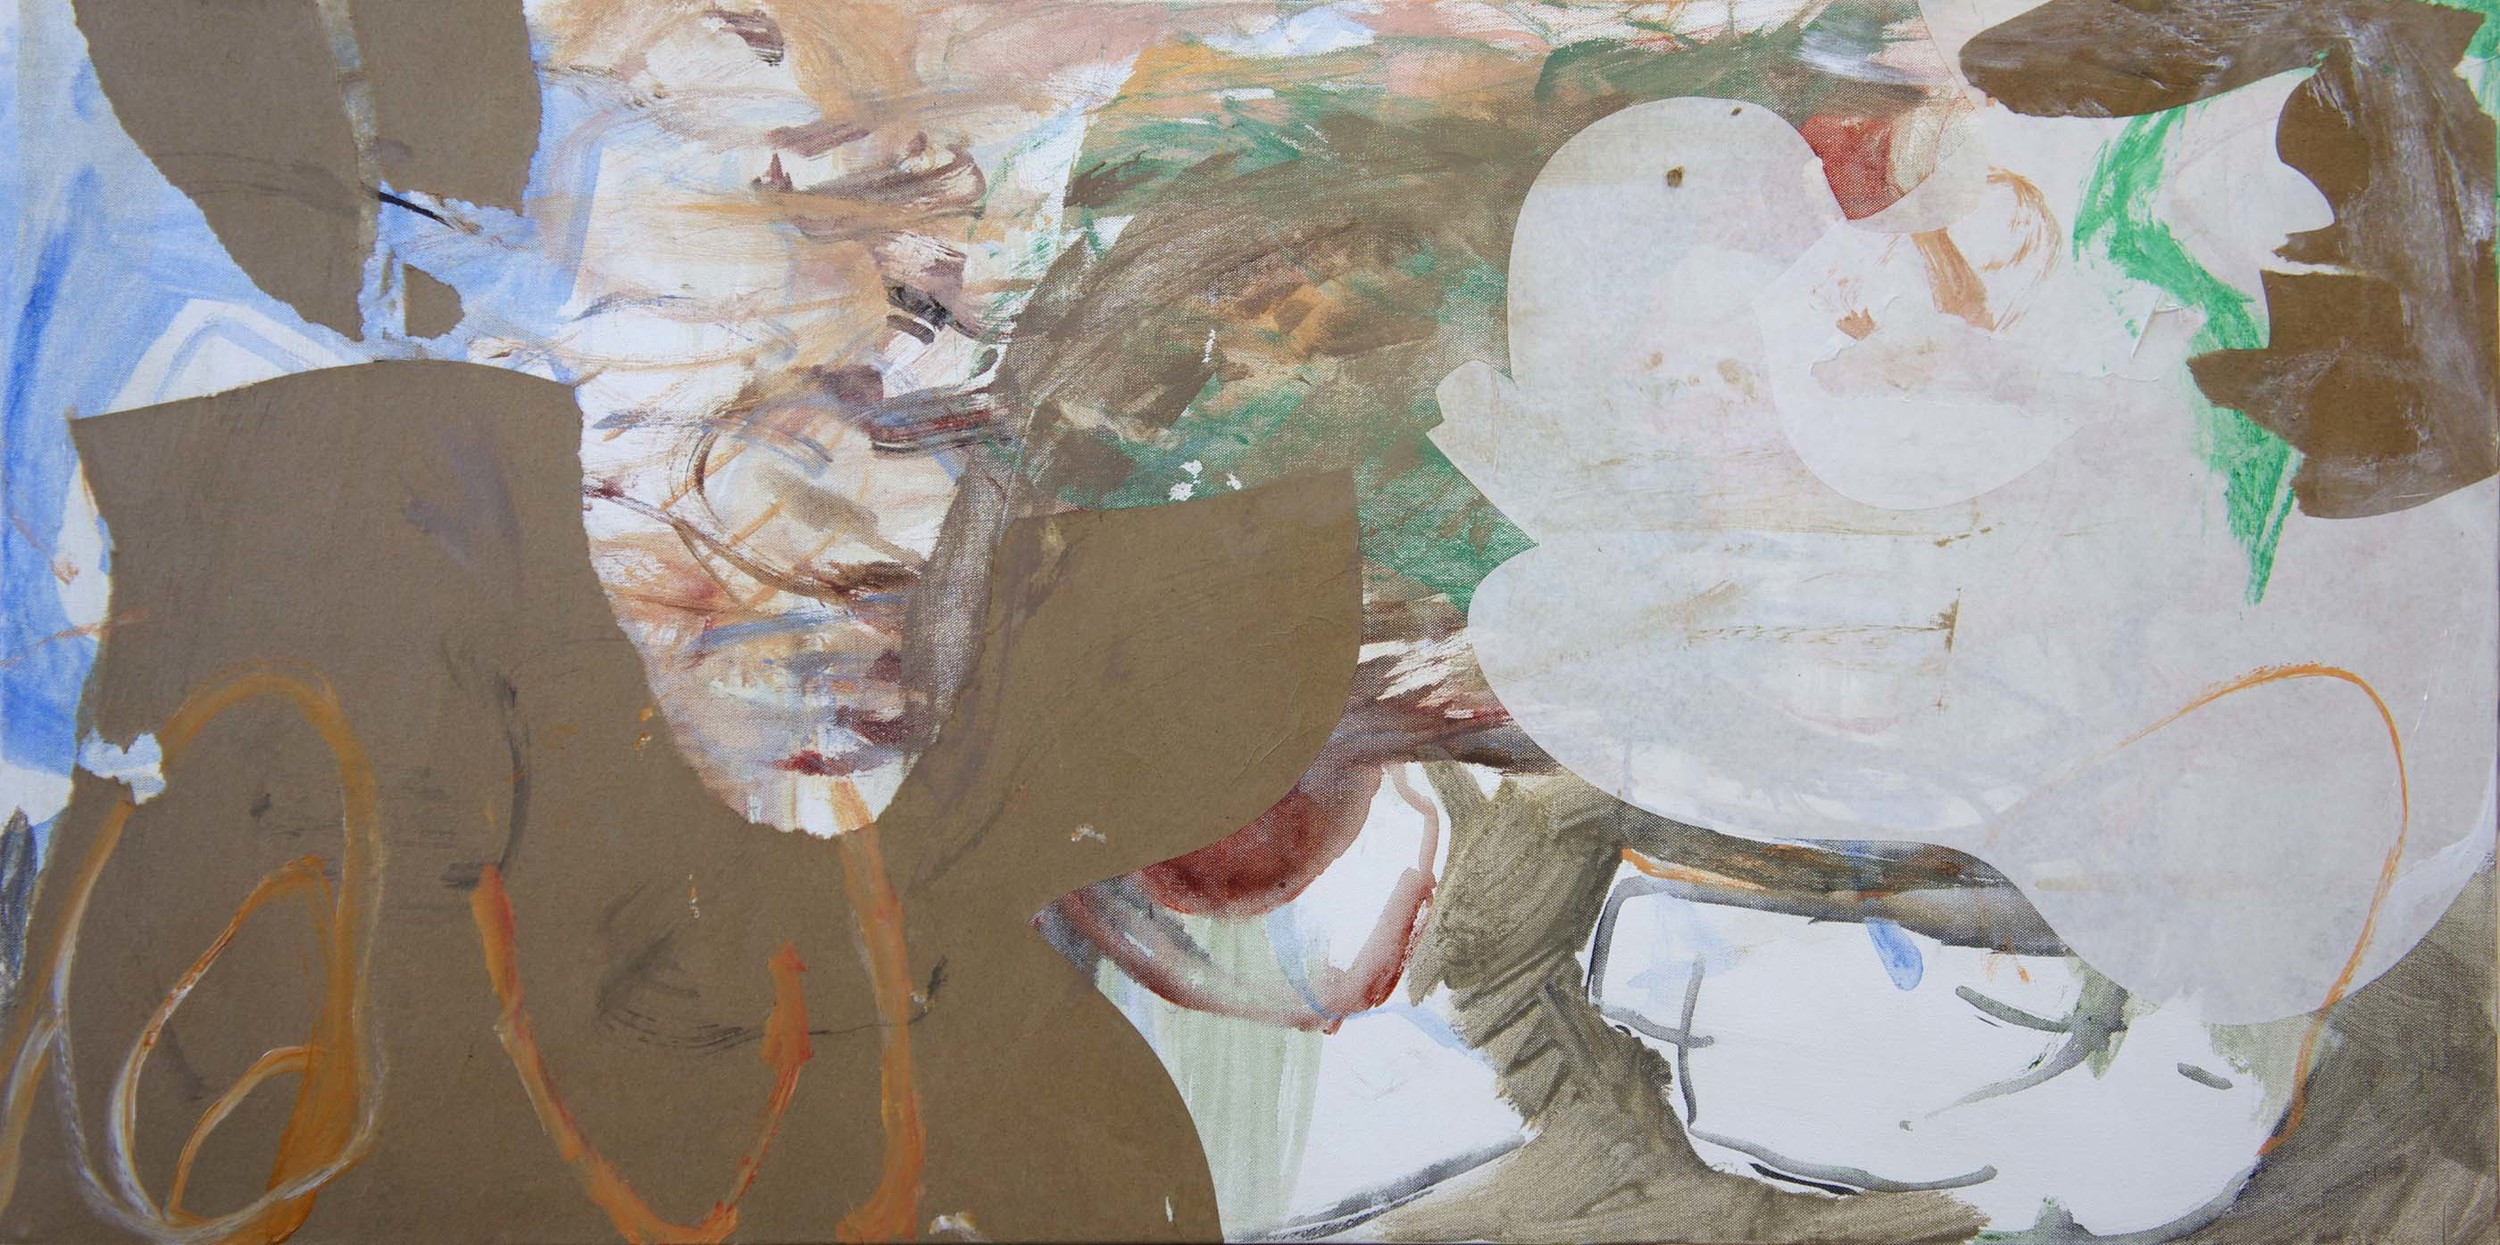 """8/29 FINAL VERSION  tun creek 24x48"""" acrylic & collaged paper on canvas"""